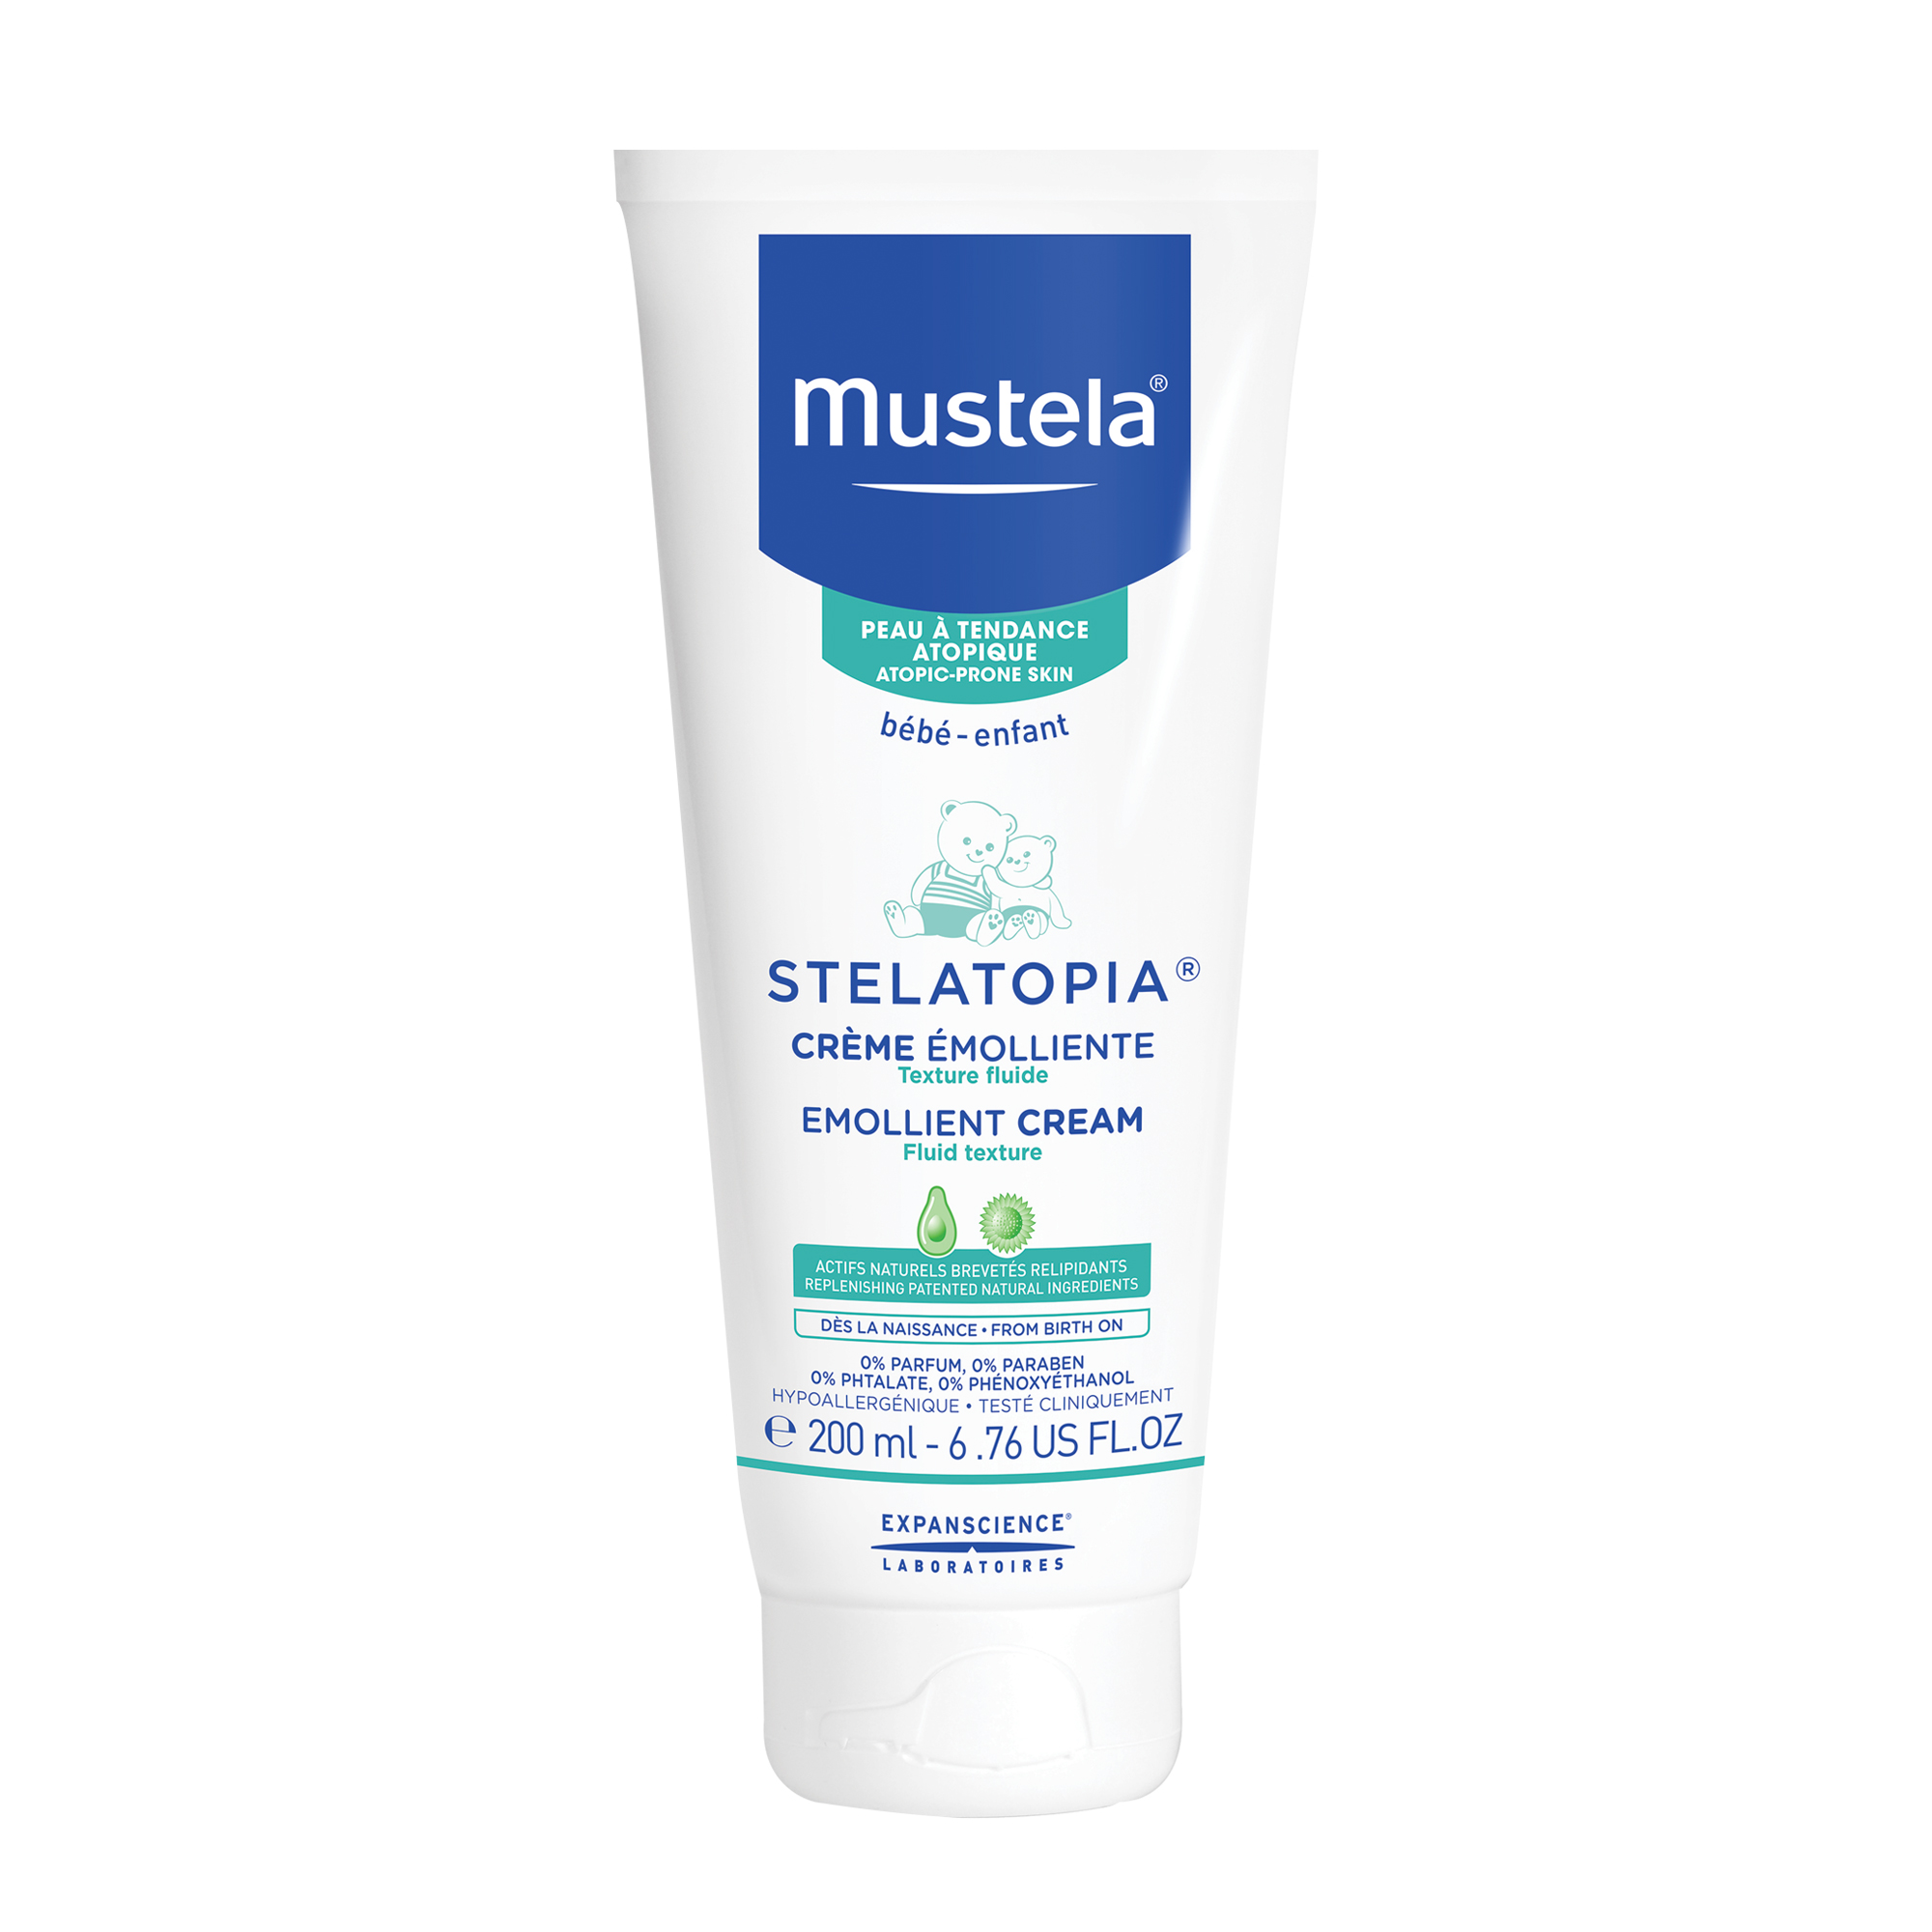 Mustela Stelatopia Baby Emollient Cream, Fragrance-Free Baby Lotion for Eczema-Prone Skin, 6.7 Oz